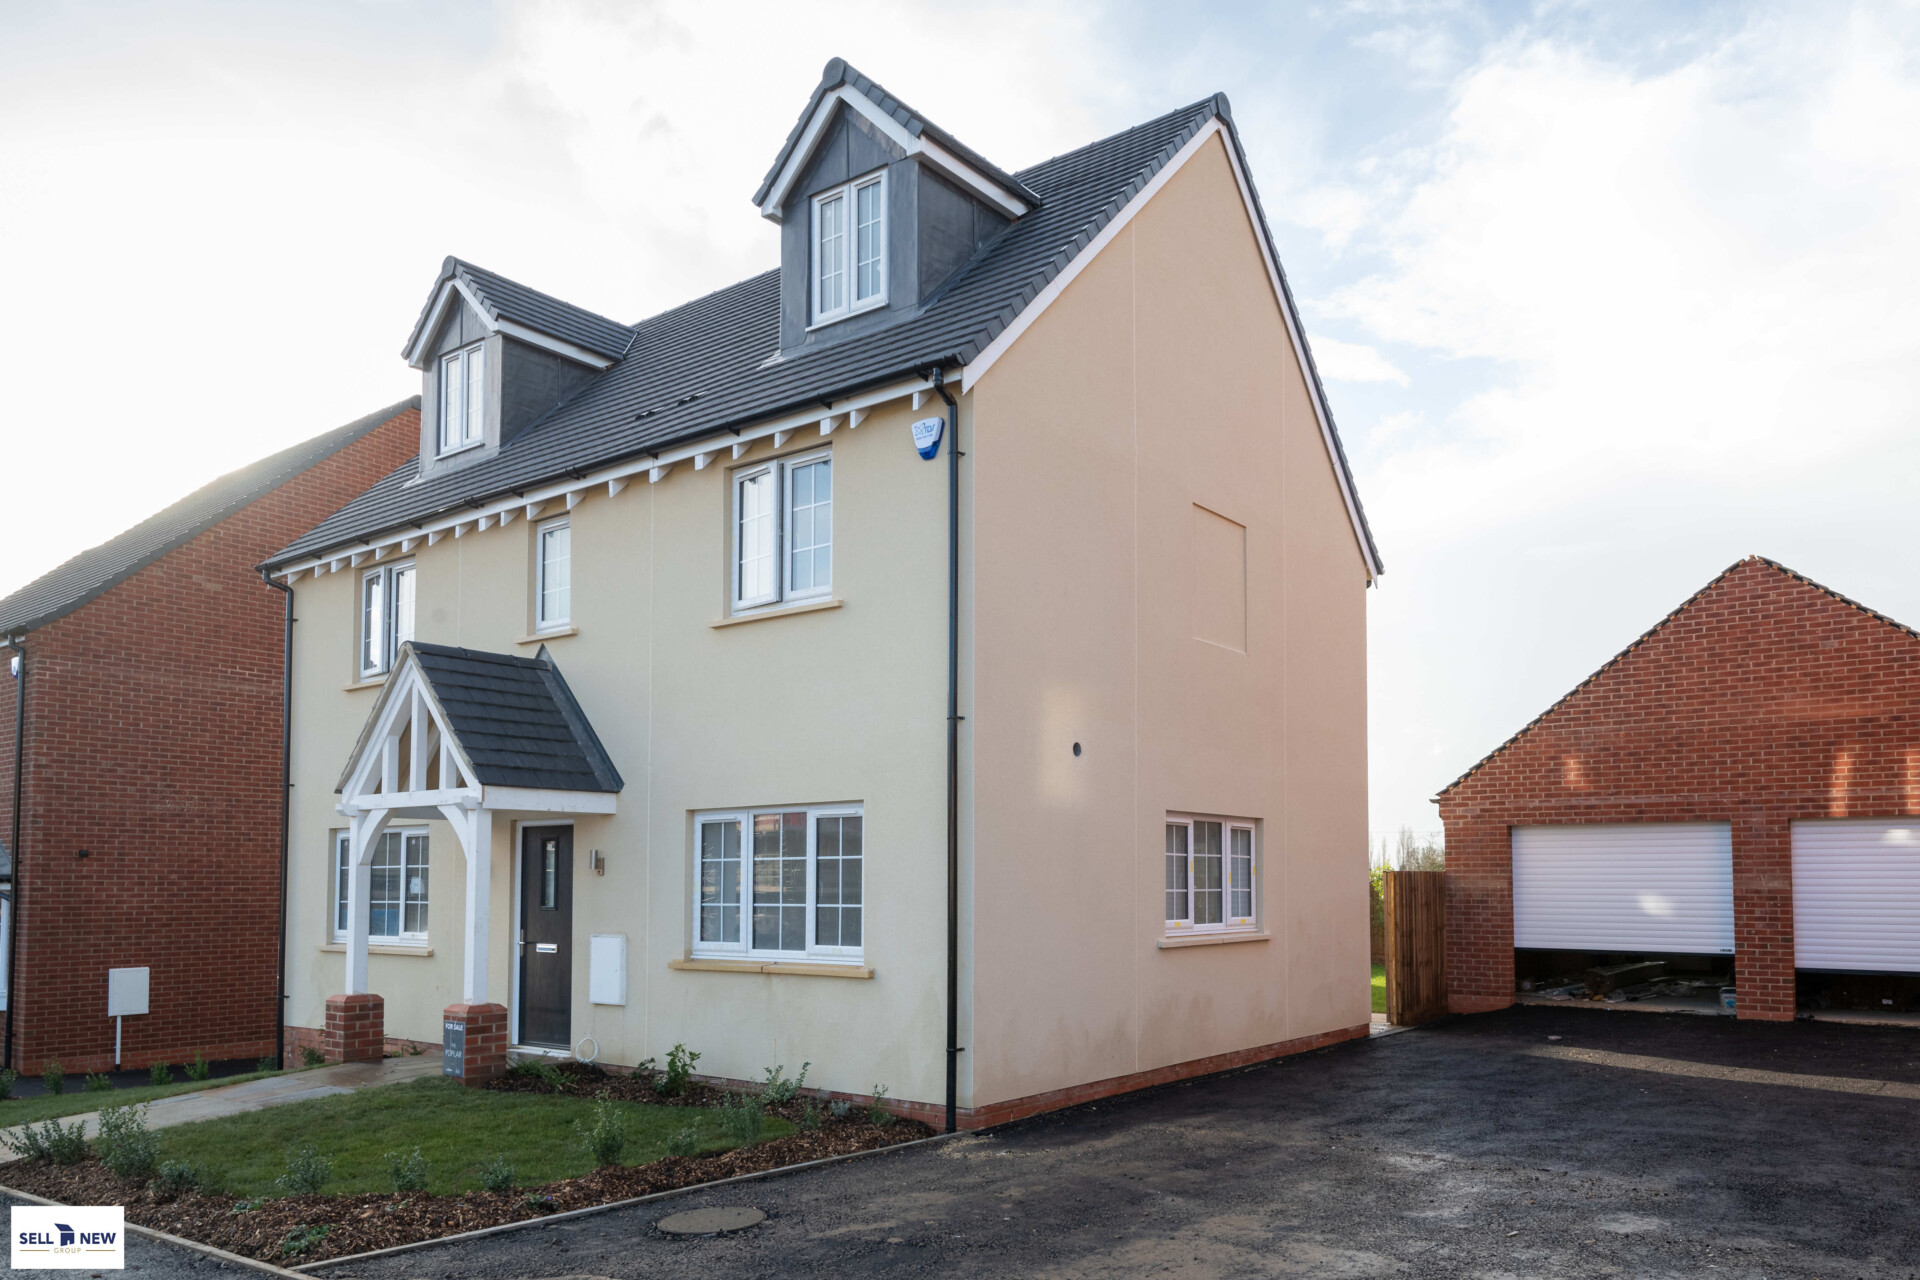 Plot 17 The Poplar, Roxton Road, Great Barford – Five bedroom detached house